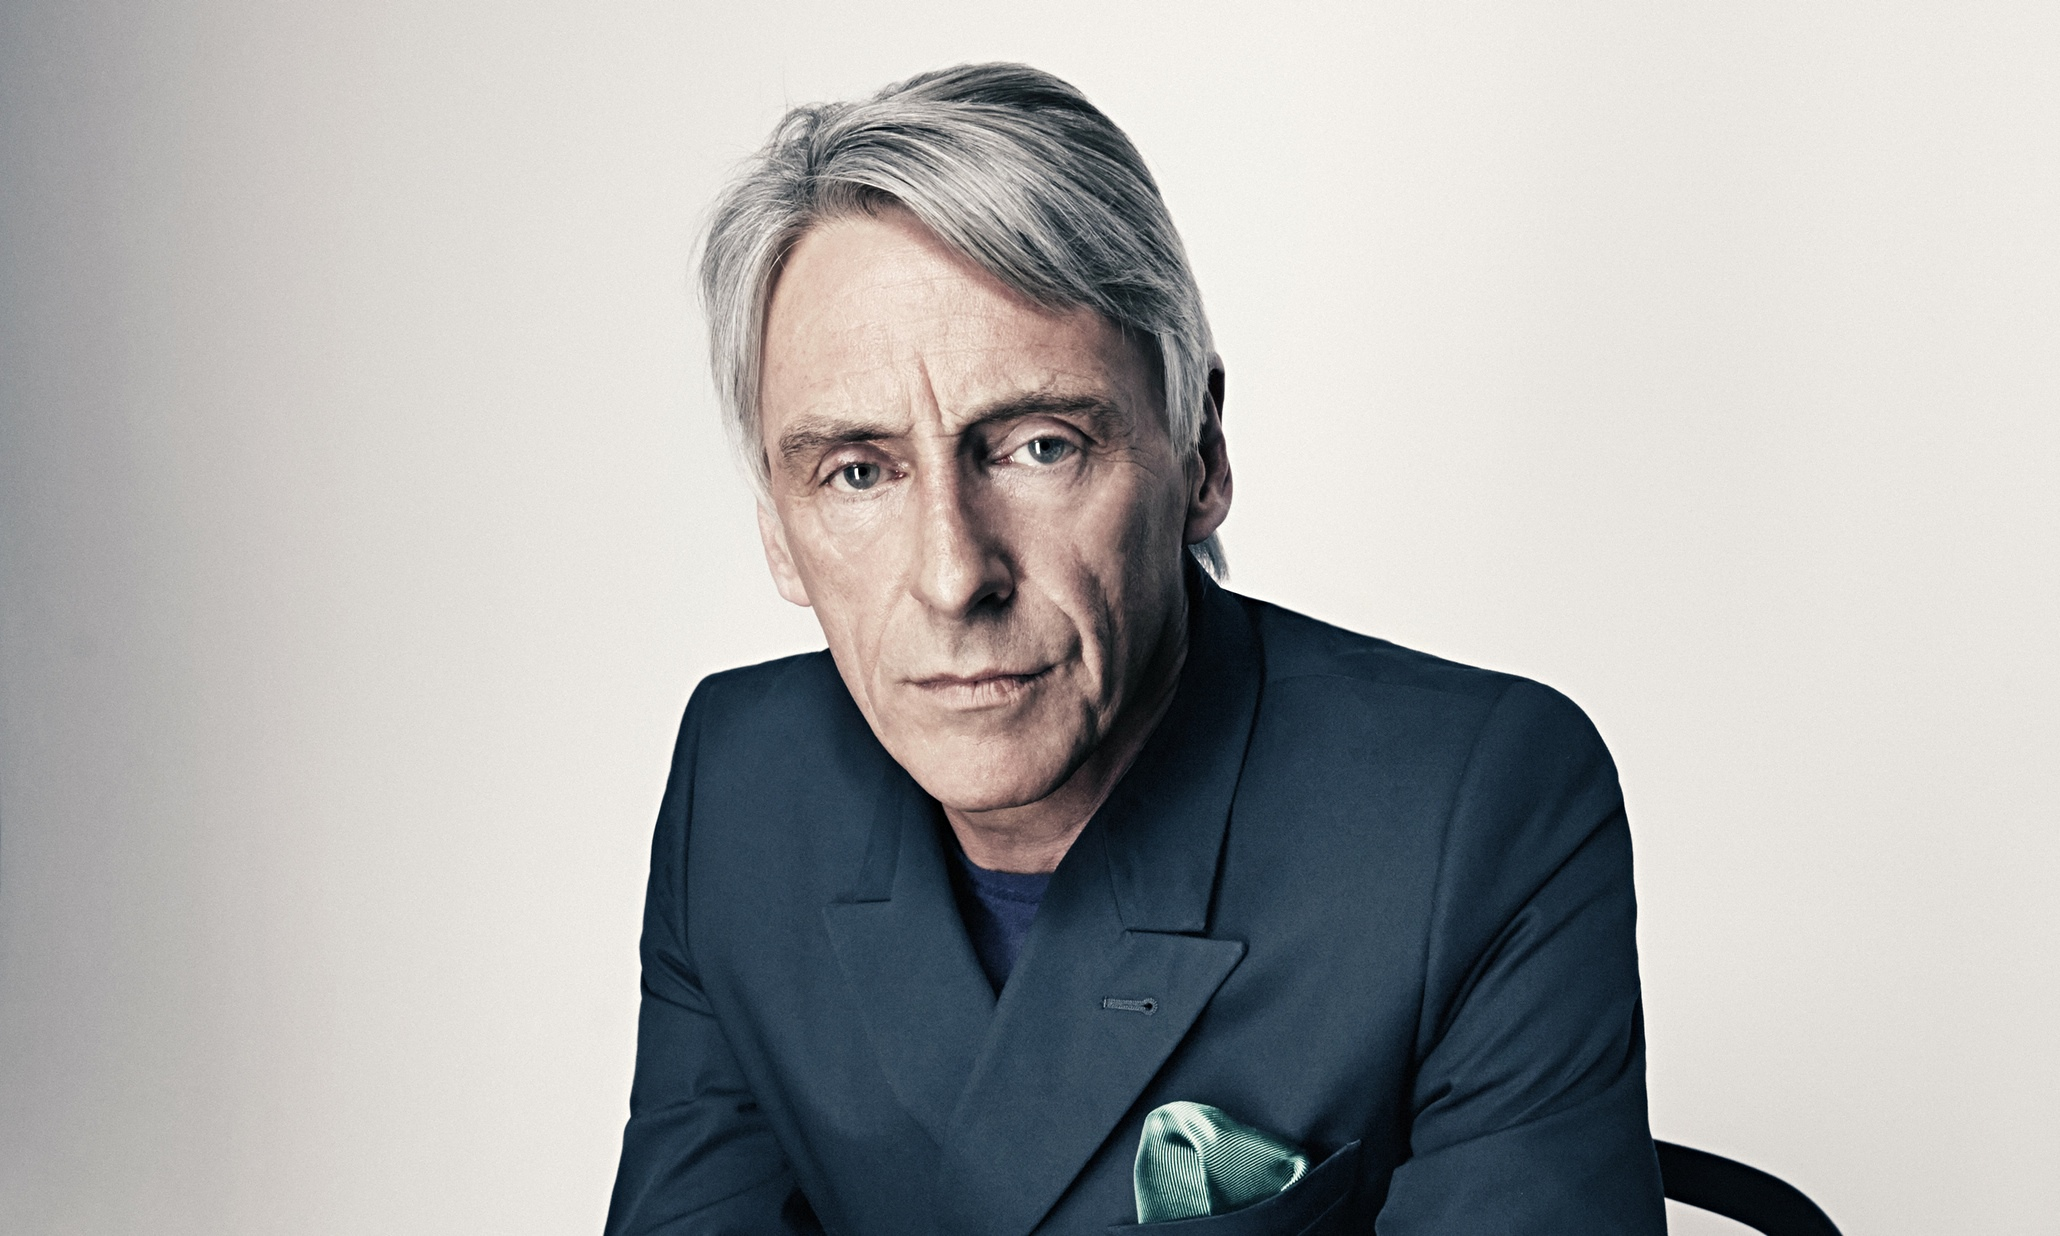 paul weller shot for the observer magazine